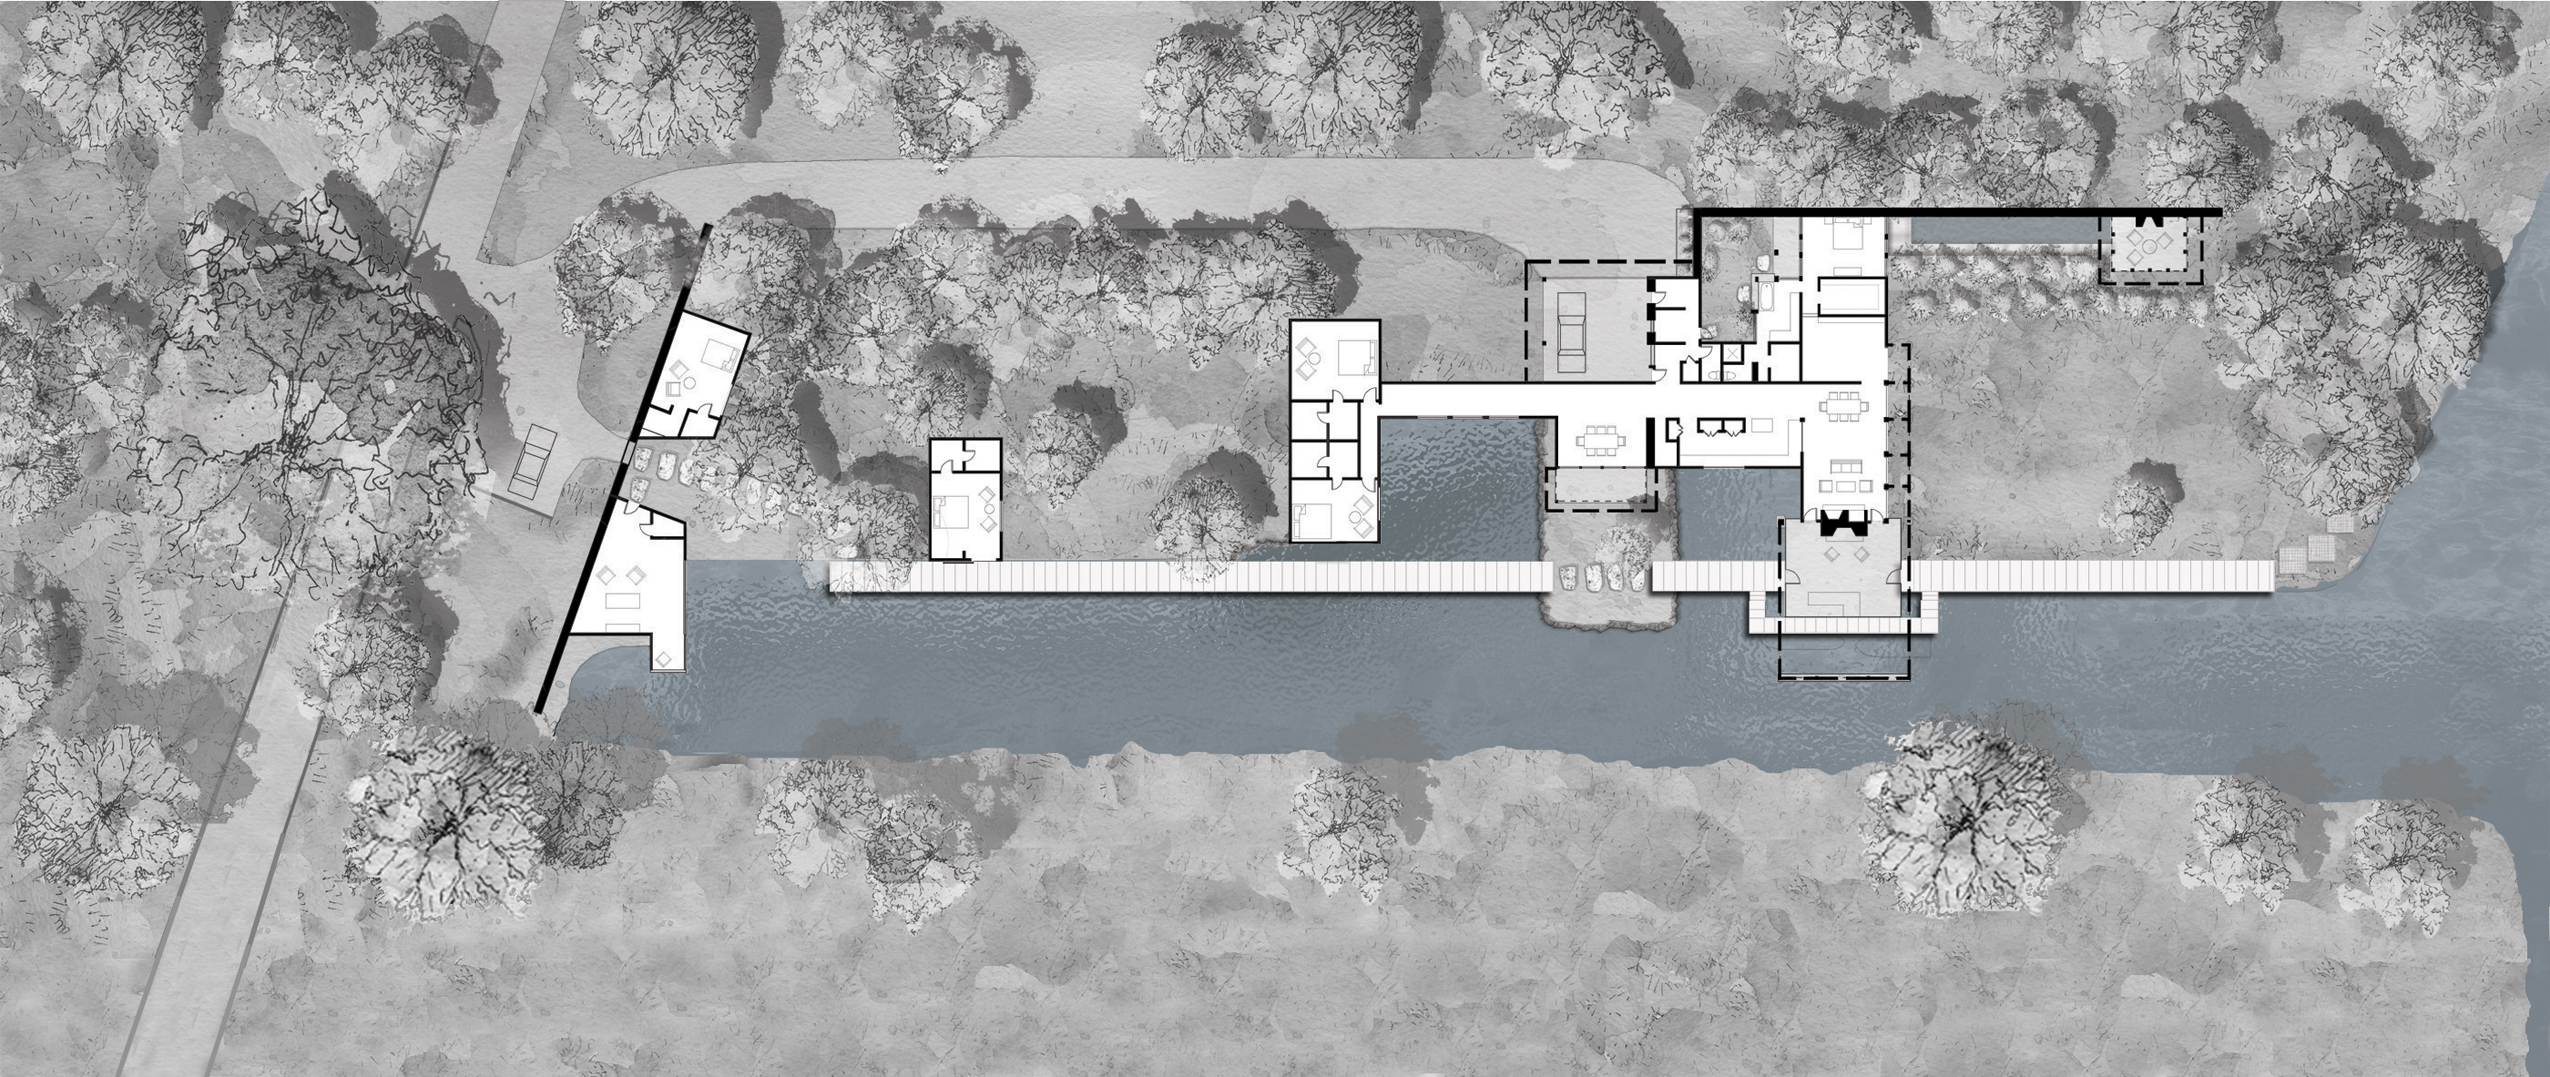 Lake Austin House Lakeflato Architects Us Simbiosis News